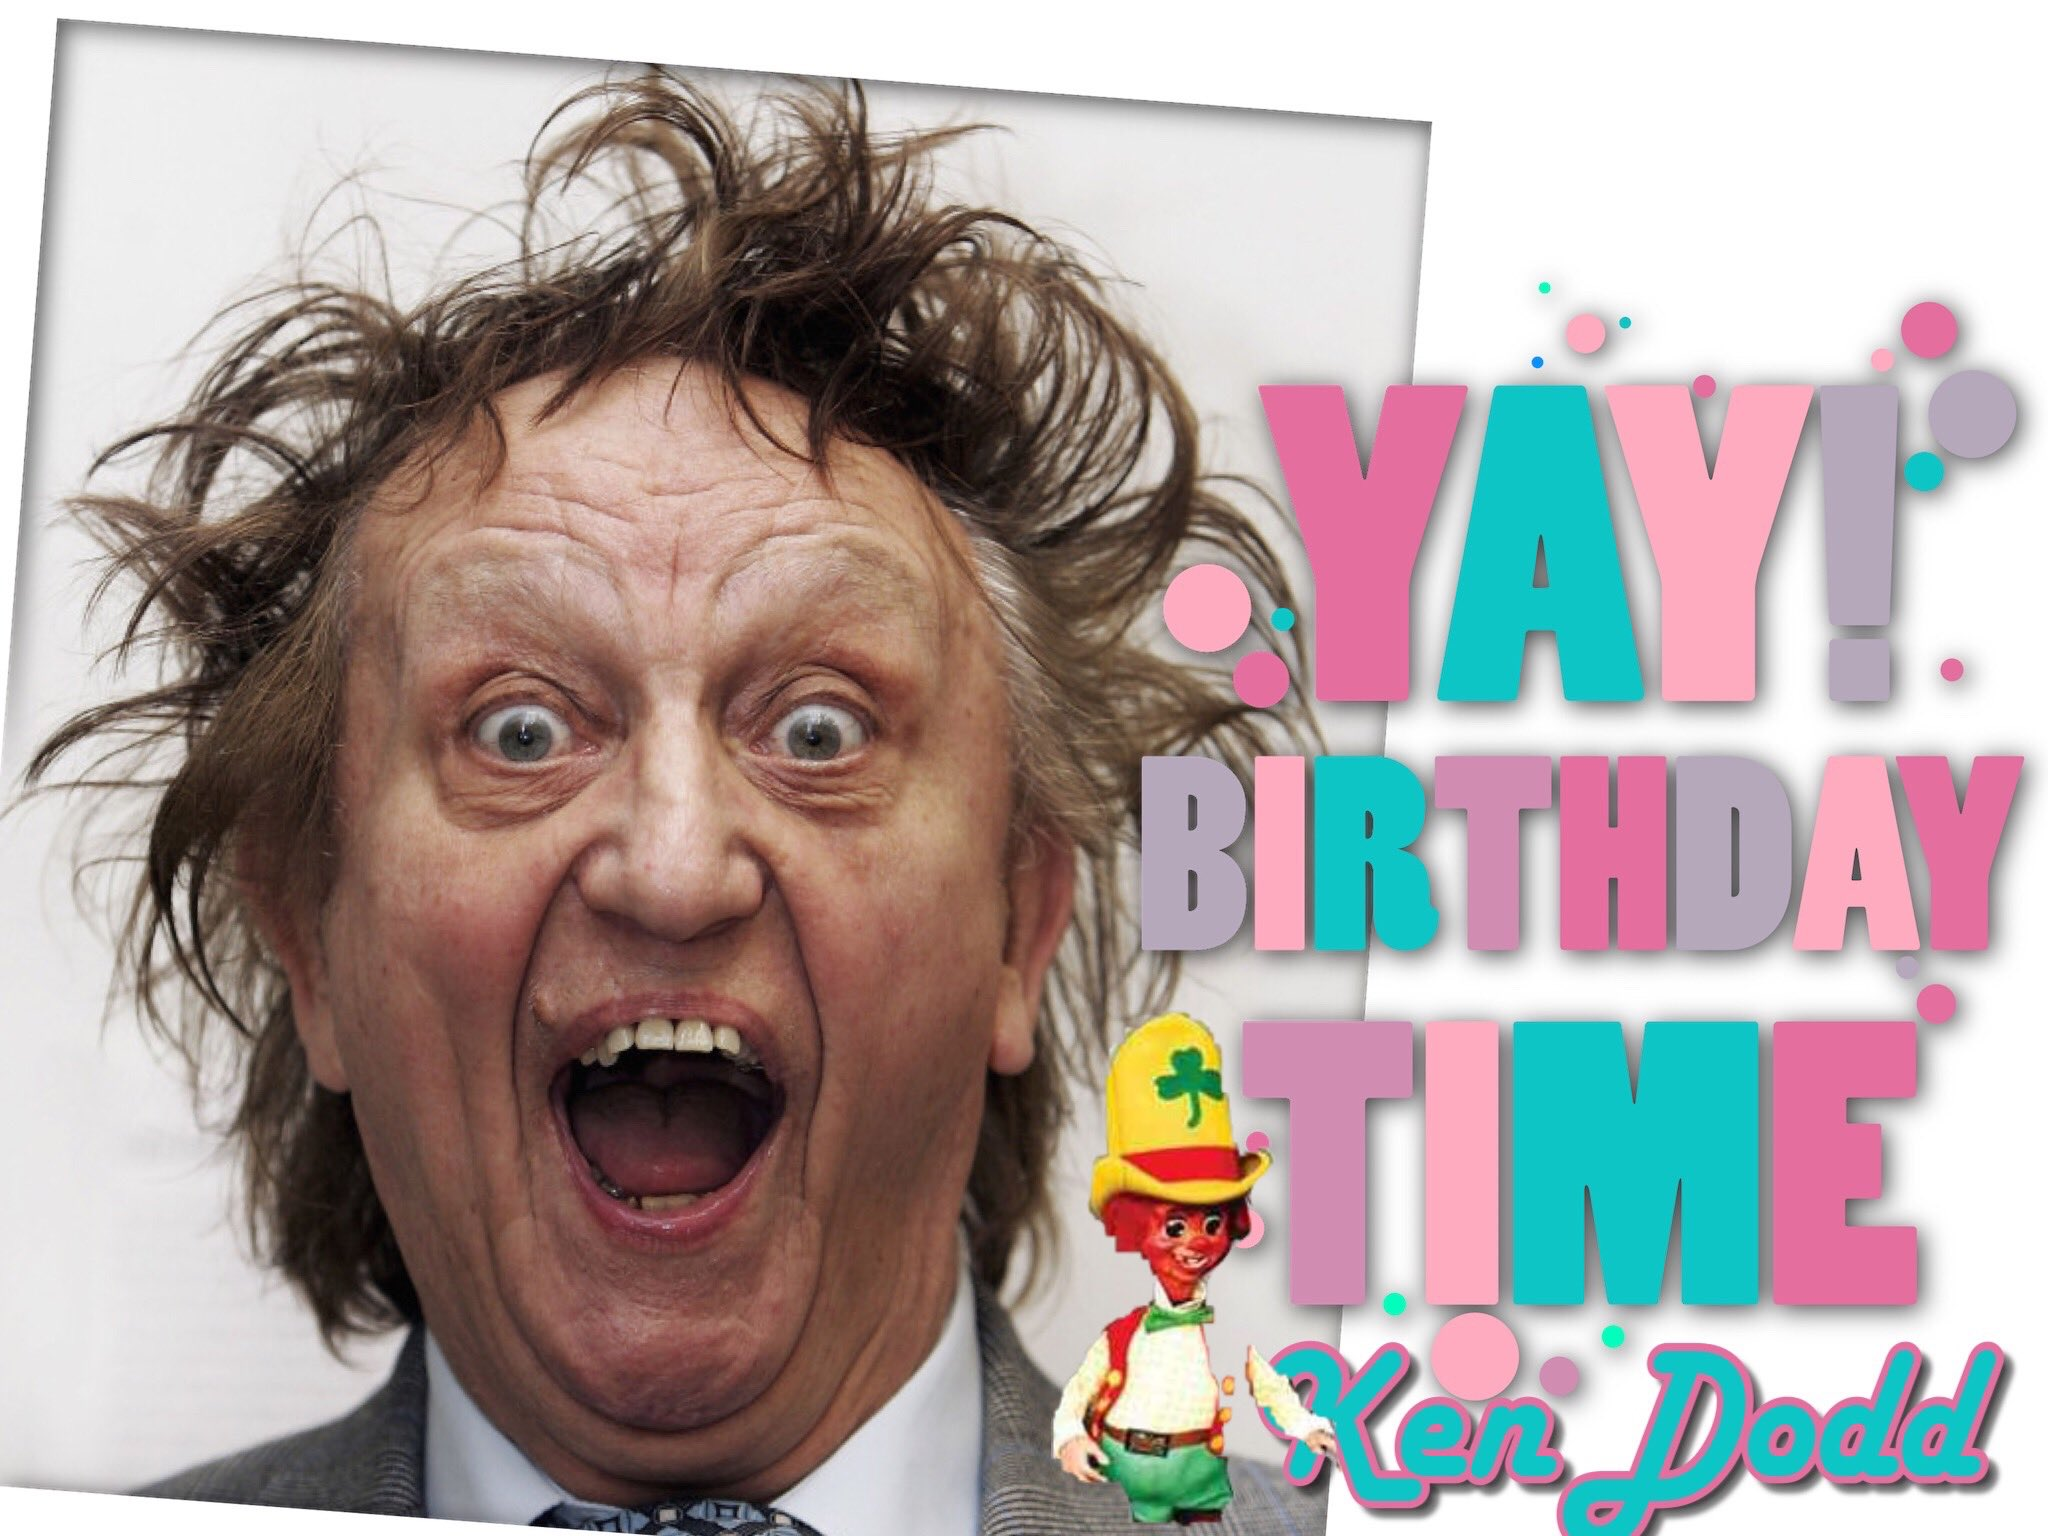 Happy Birthday Ken Dodd, Richard Stoker, Jim Redman, Matthew Rhys, Joe Cole, Richard Curtis, Norman Lloyd & Roy Wood